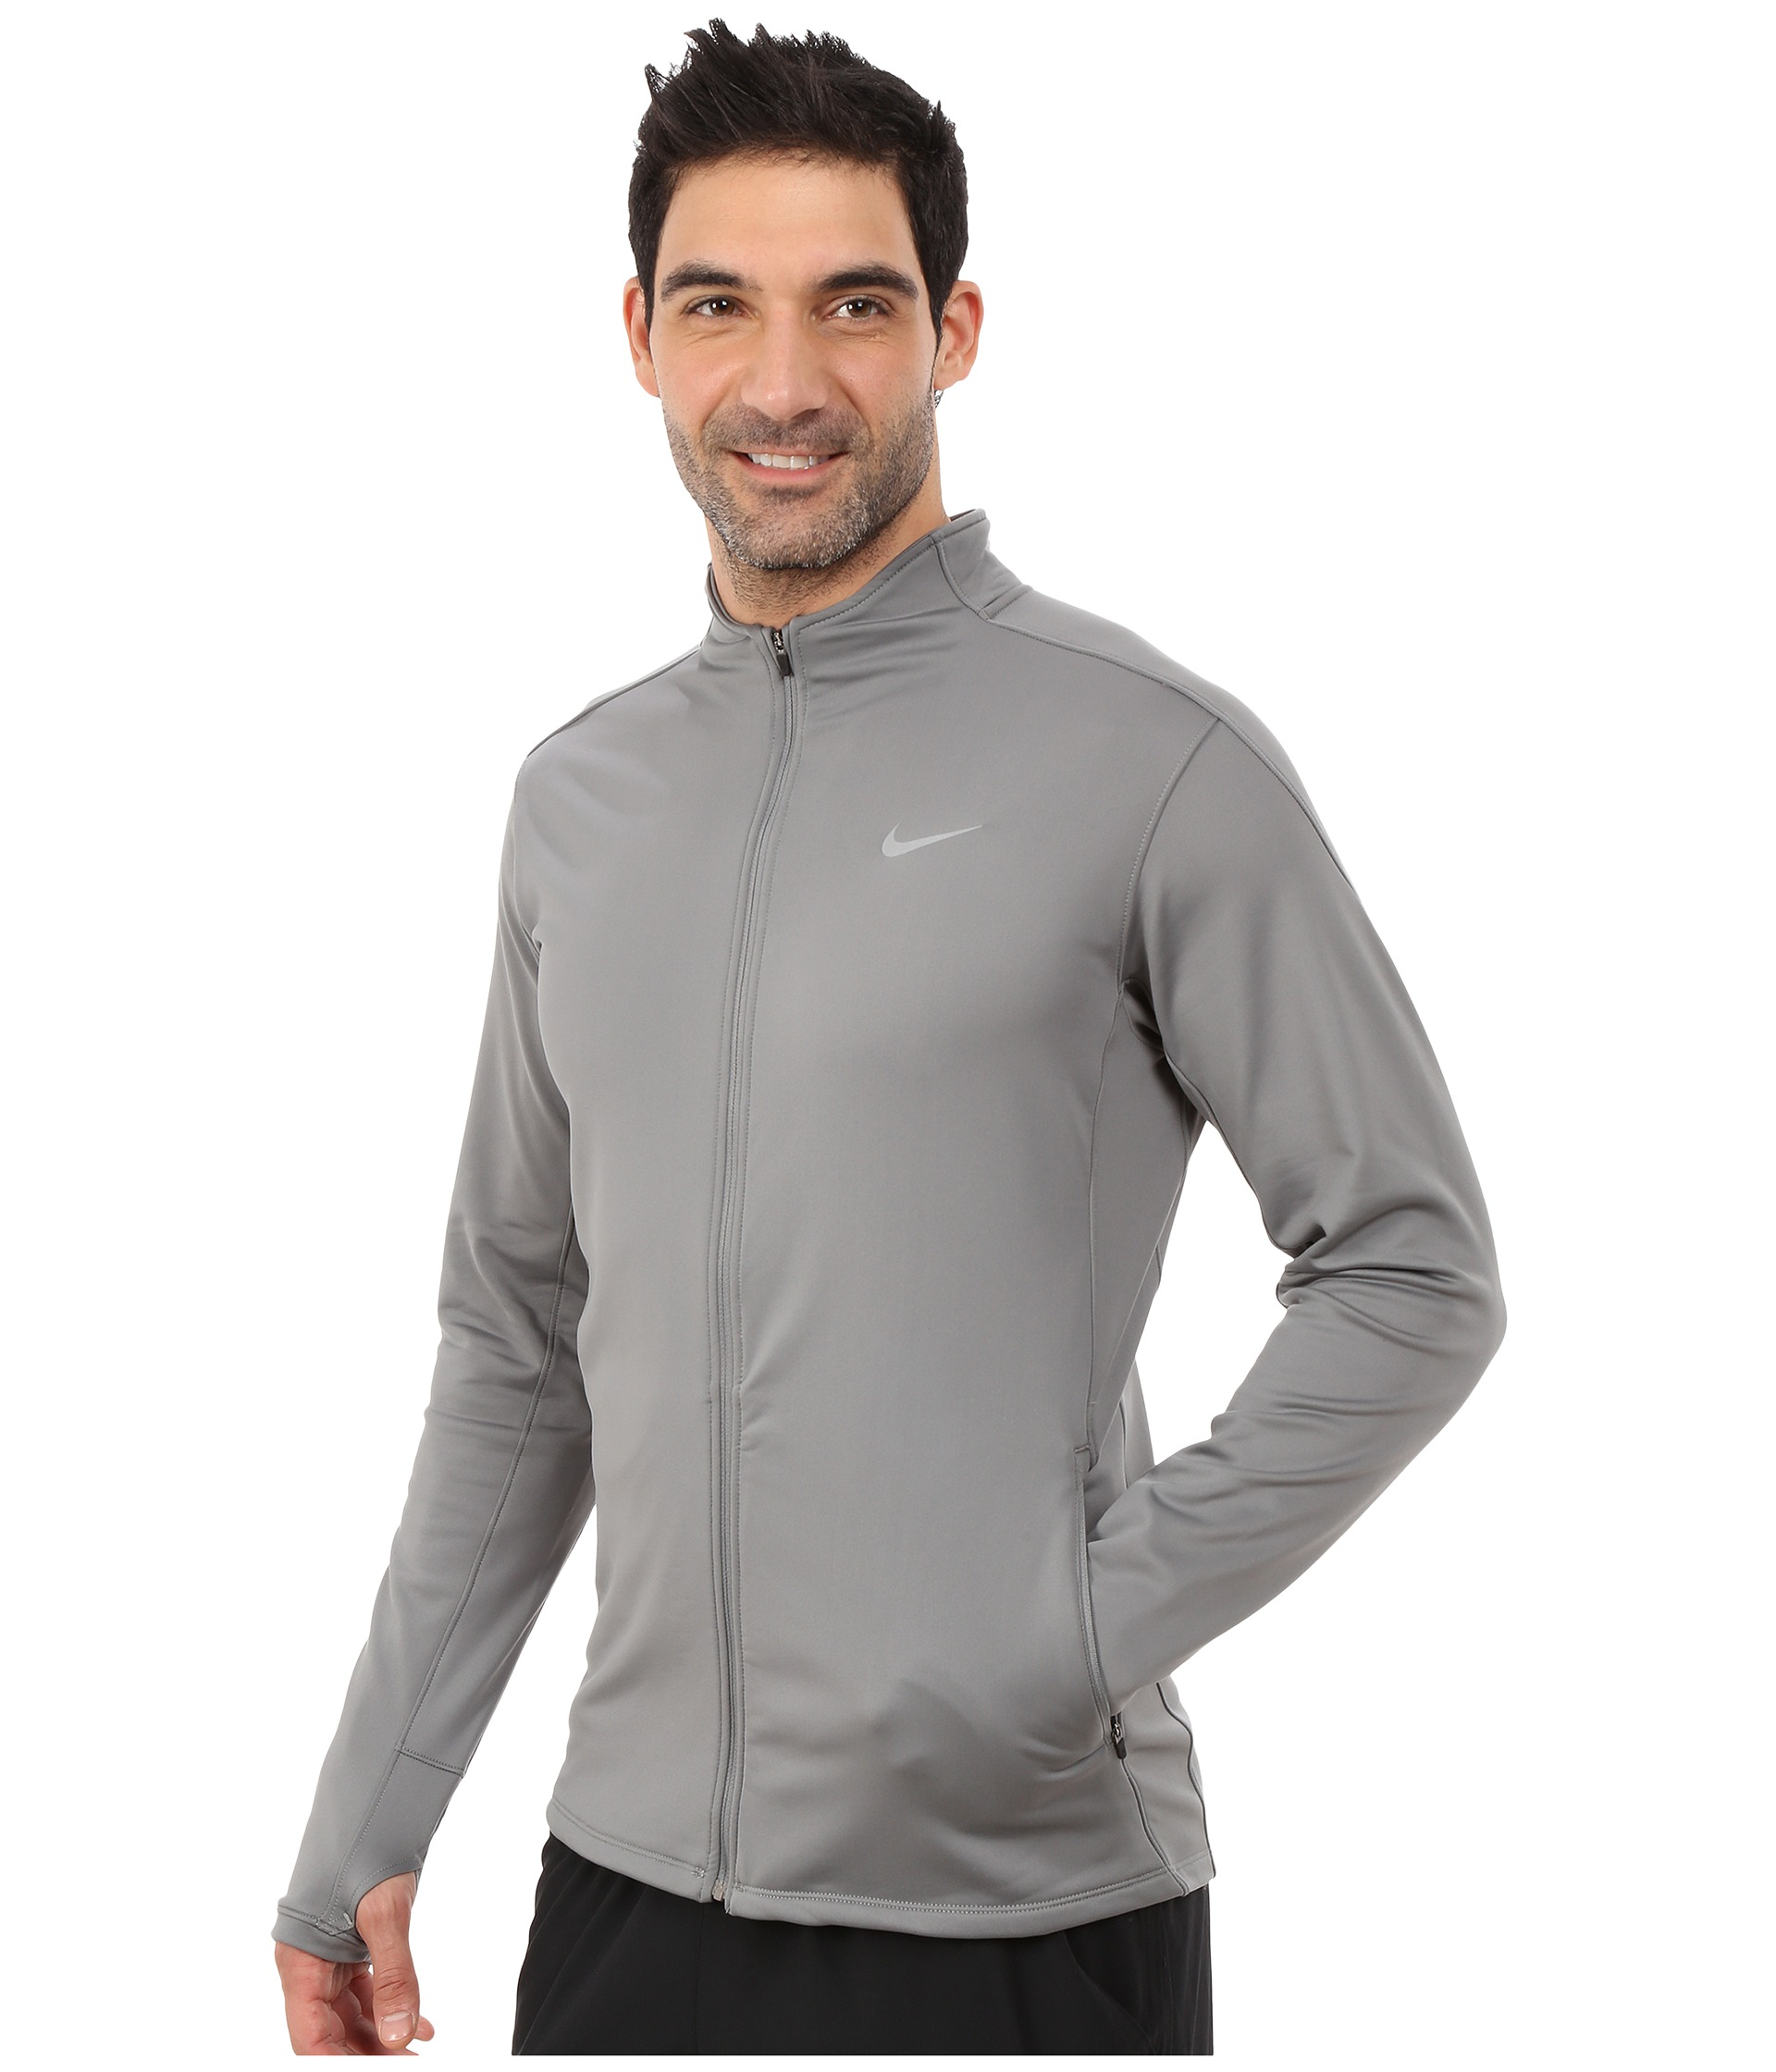 nike dri fit thermal full zip running jacket free shipping both ways. Black Bedroom Furniture Sets. Home Design Ideas